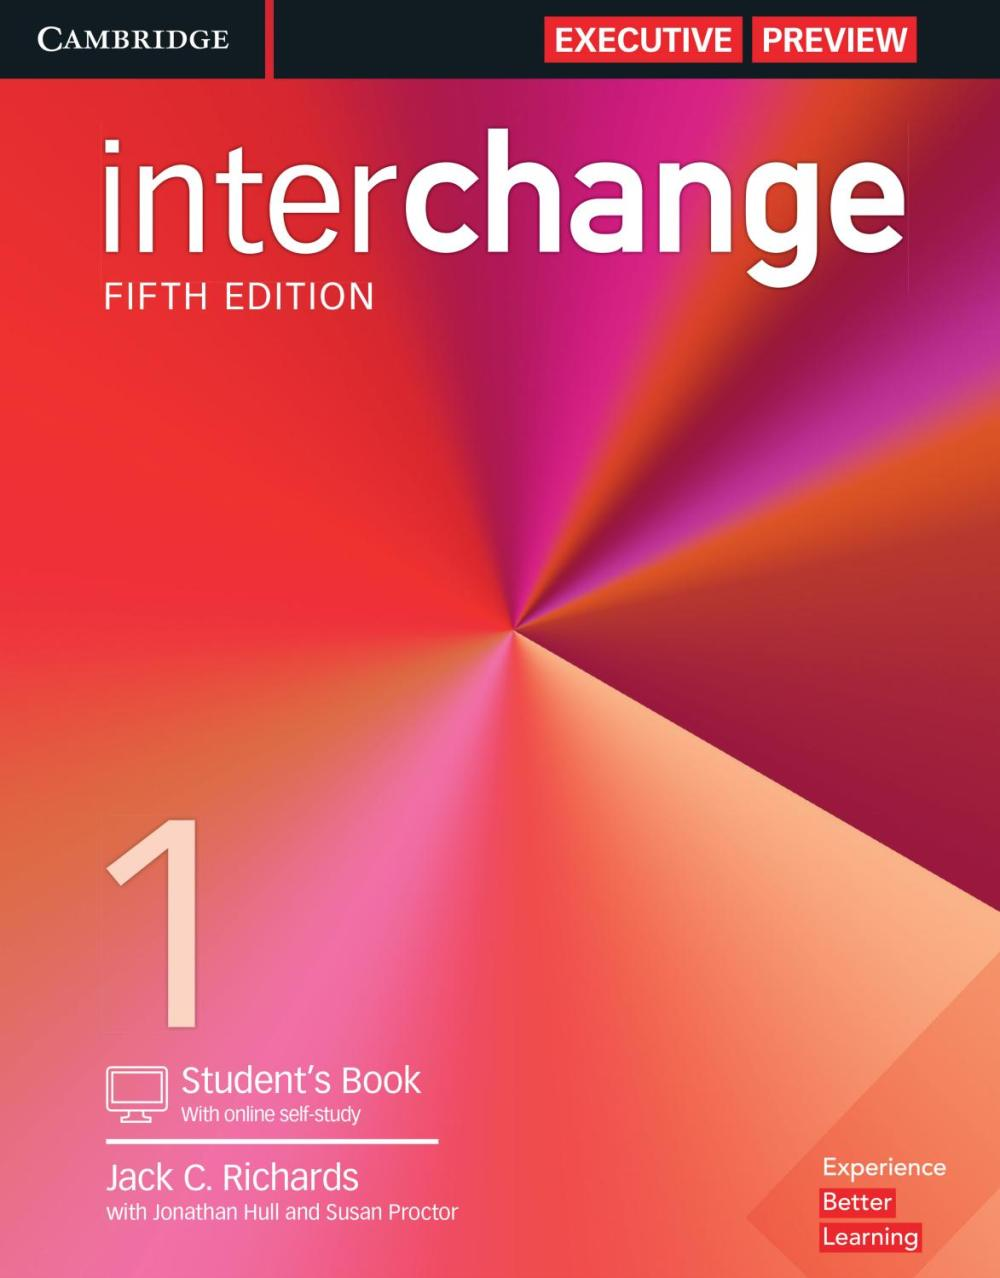 medium resolution of Interchange Fifth Edition - Executive Preview by Cambridge University Press  - issuu